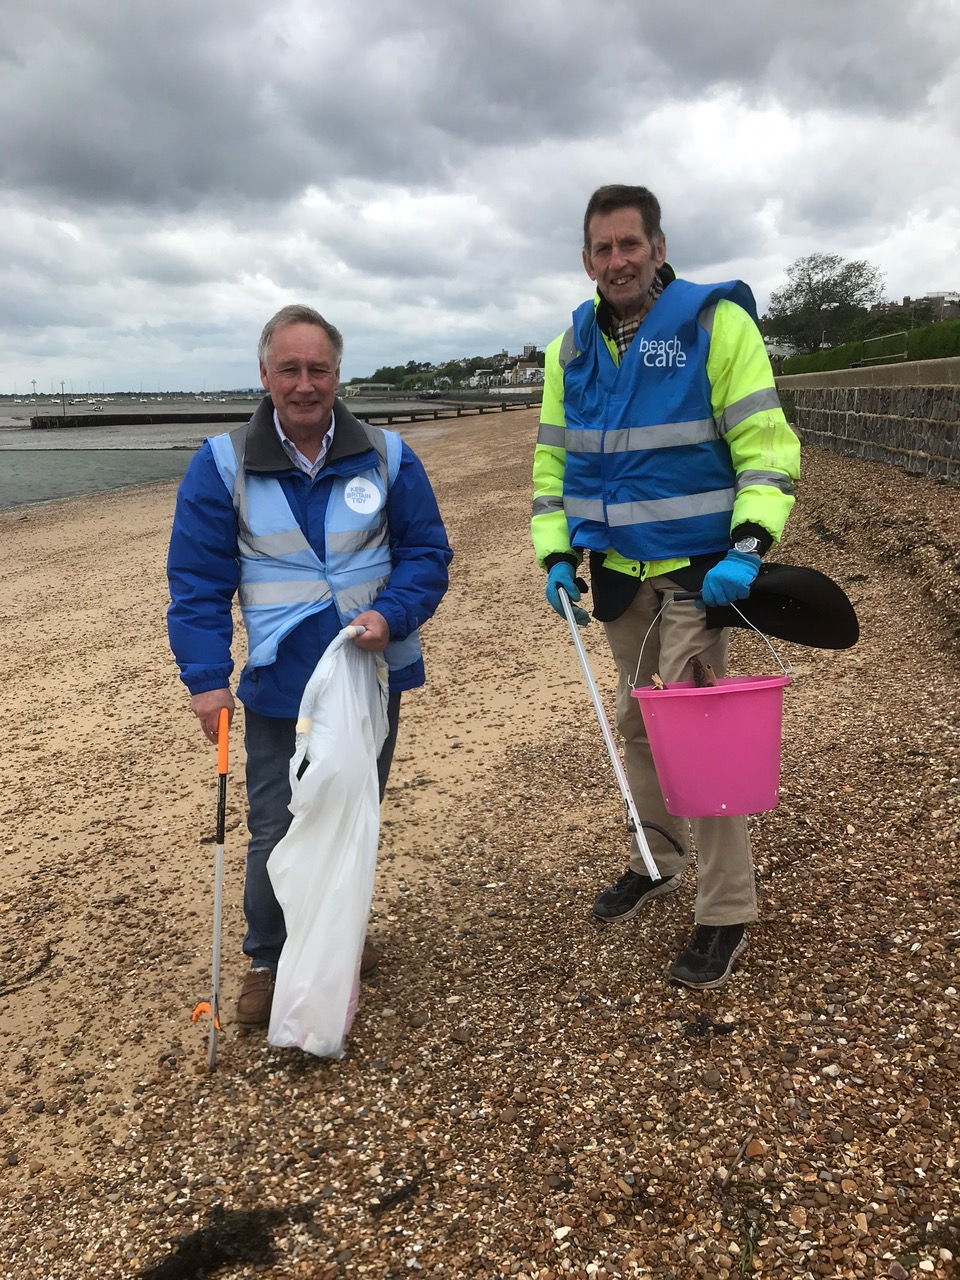 Keeping Southend beaches clean & safe